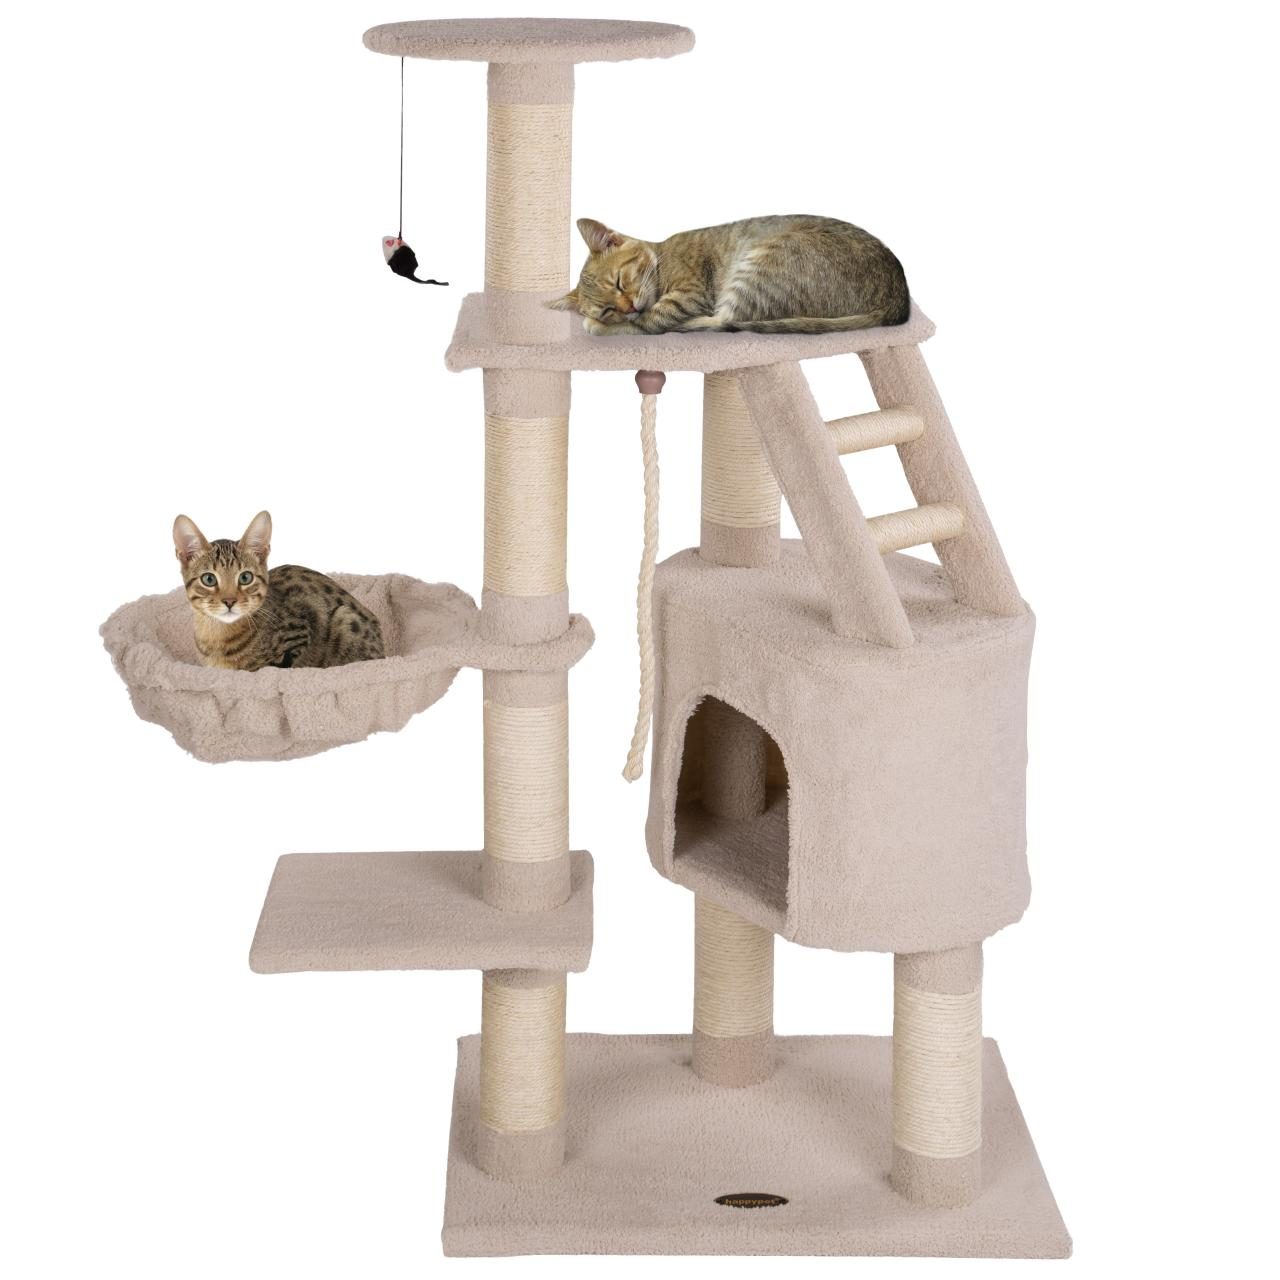 cat tree furniture scratching post activity centre climbing toy medium sized. Black Bedroom Furniture Sets. Home Design Ideas